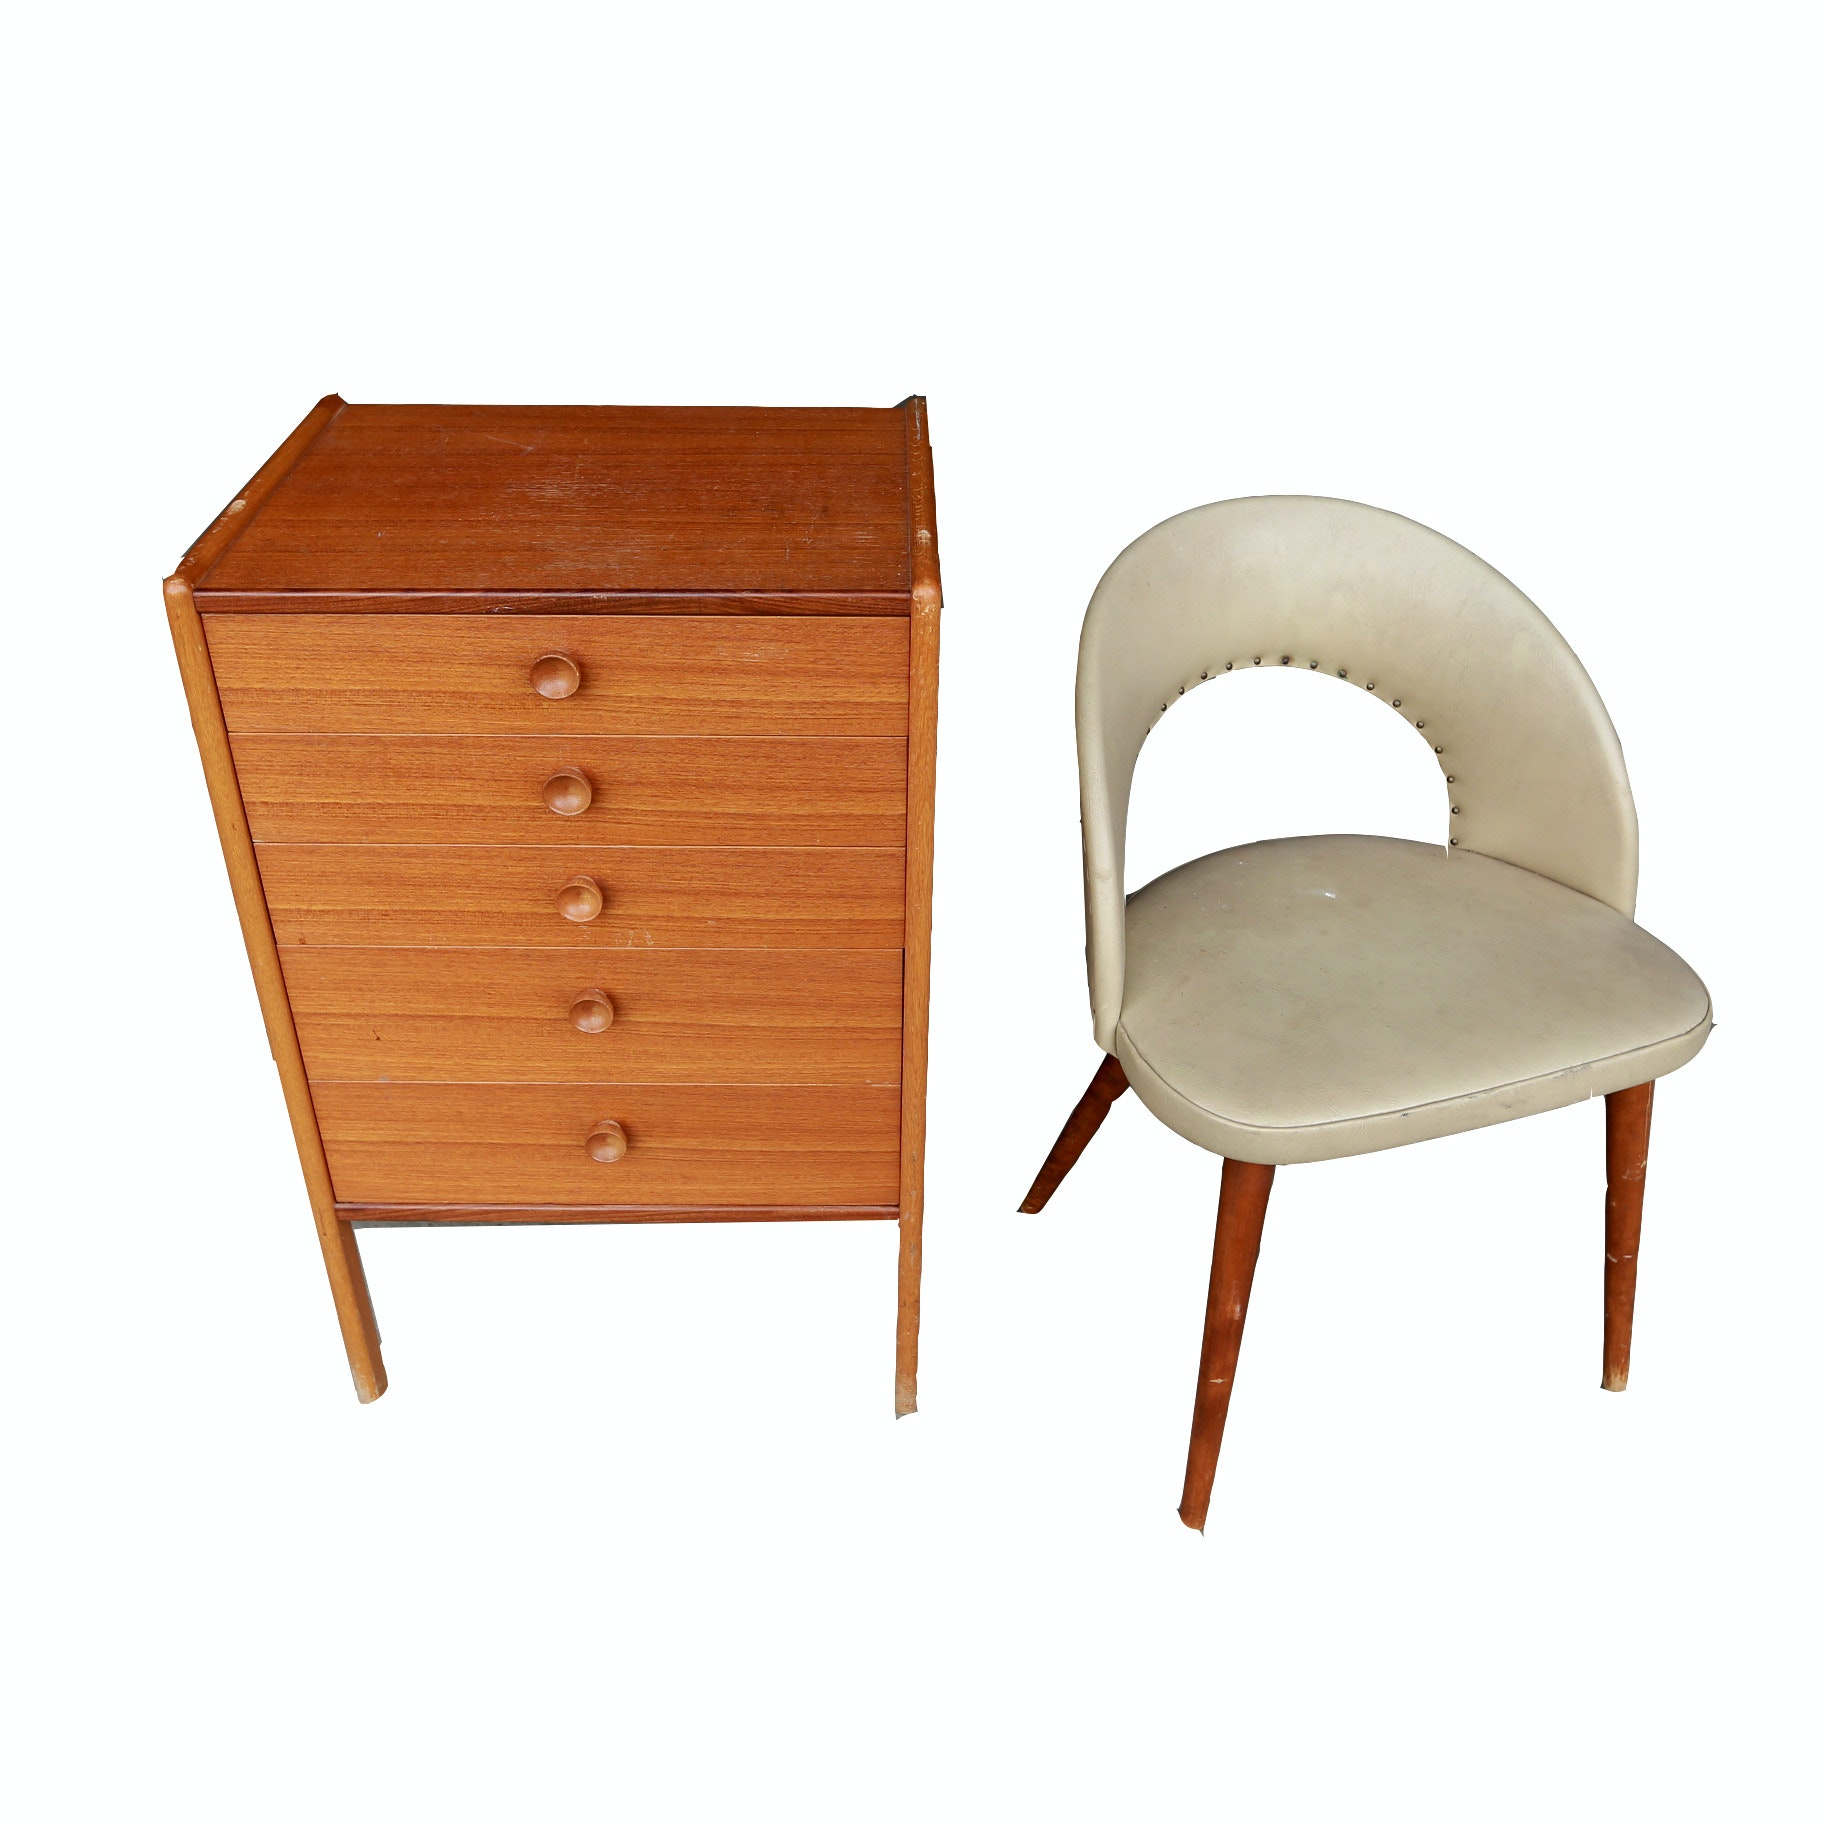 Danish Modern Small Wooden Chest of Drawers and Vinyl Side Chair